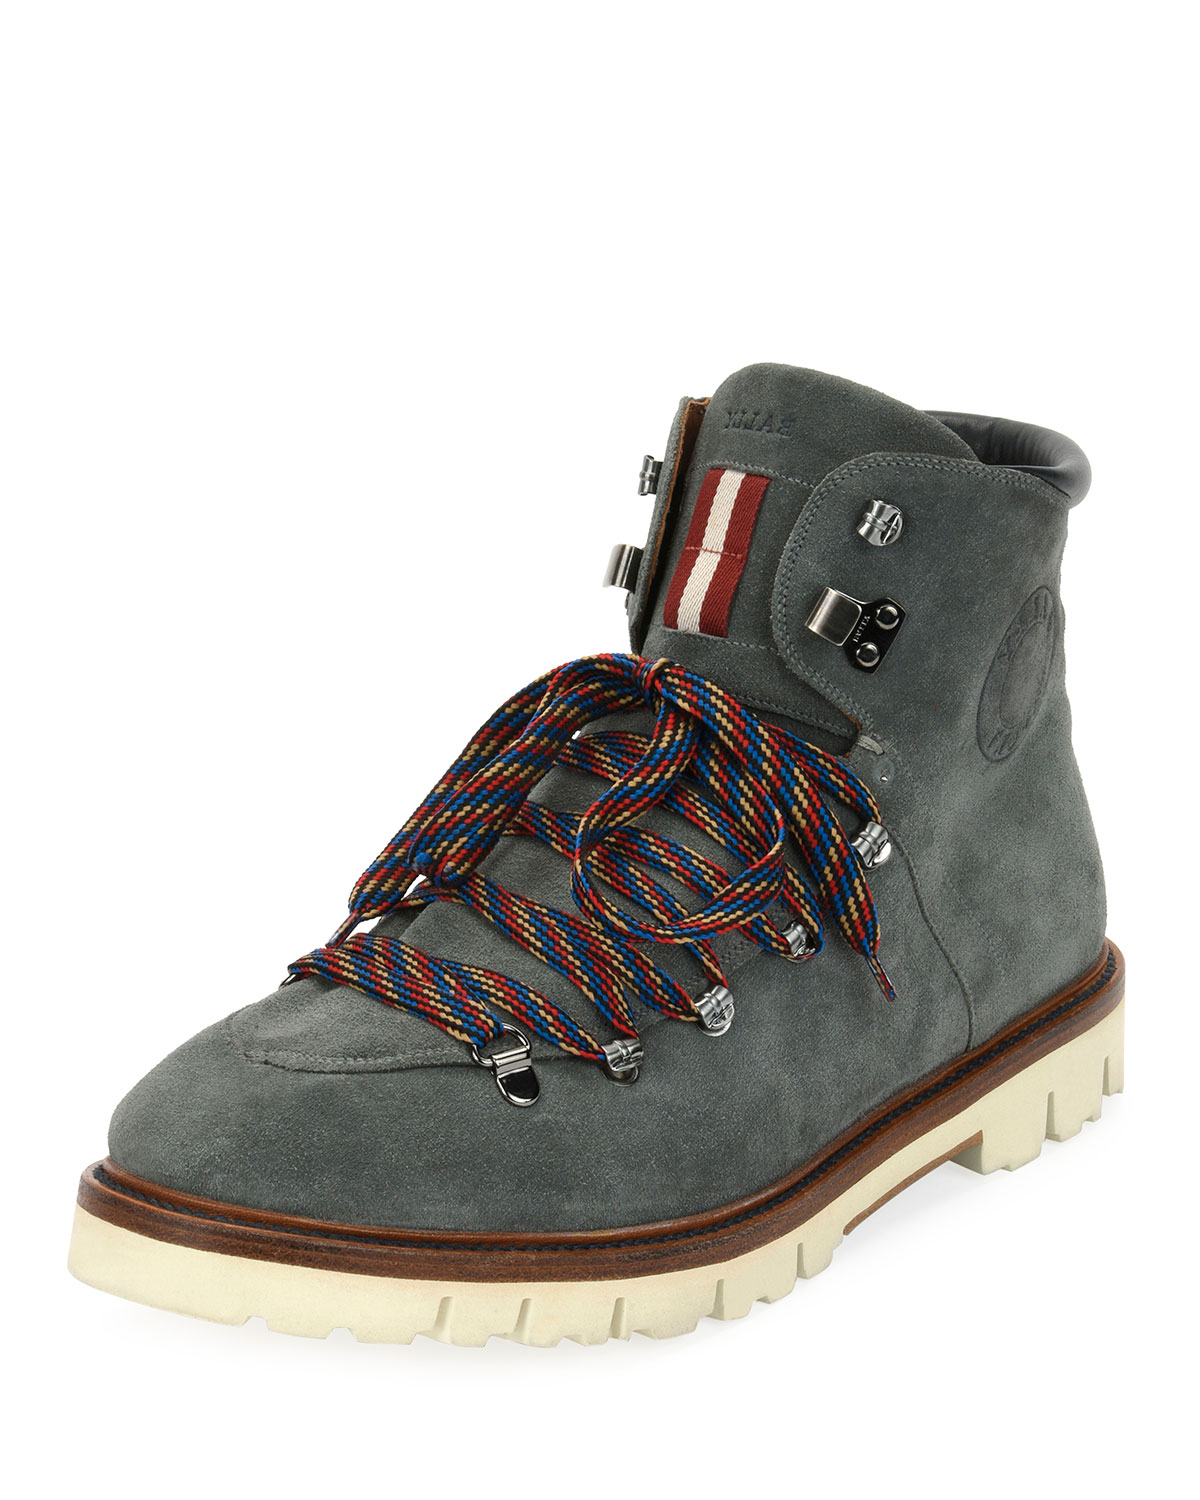 9f3f8ccd184 Men's Chack Suede Hiking Boots